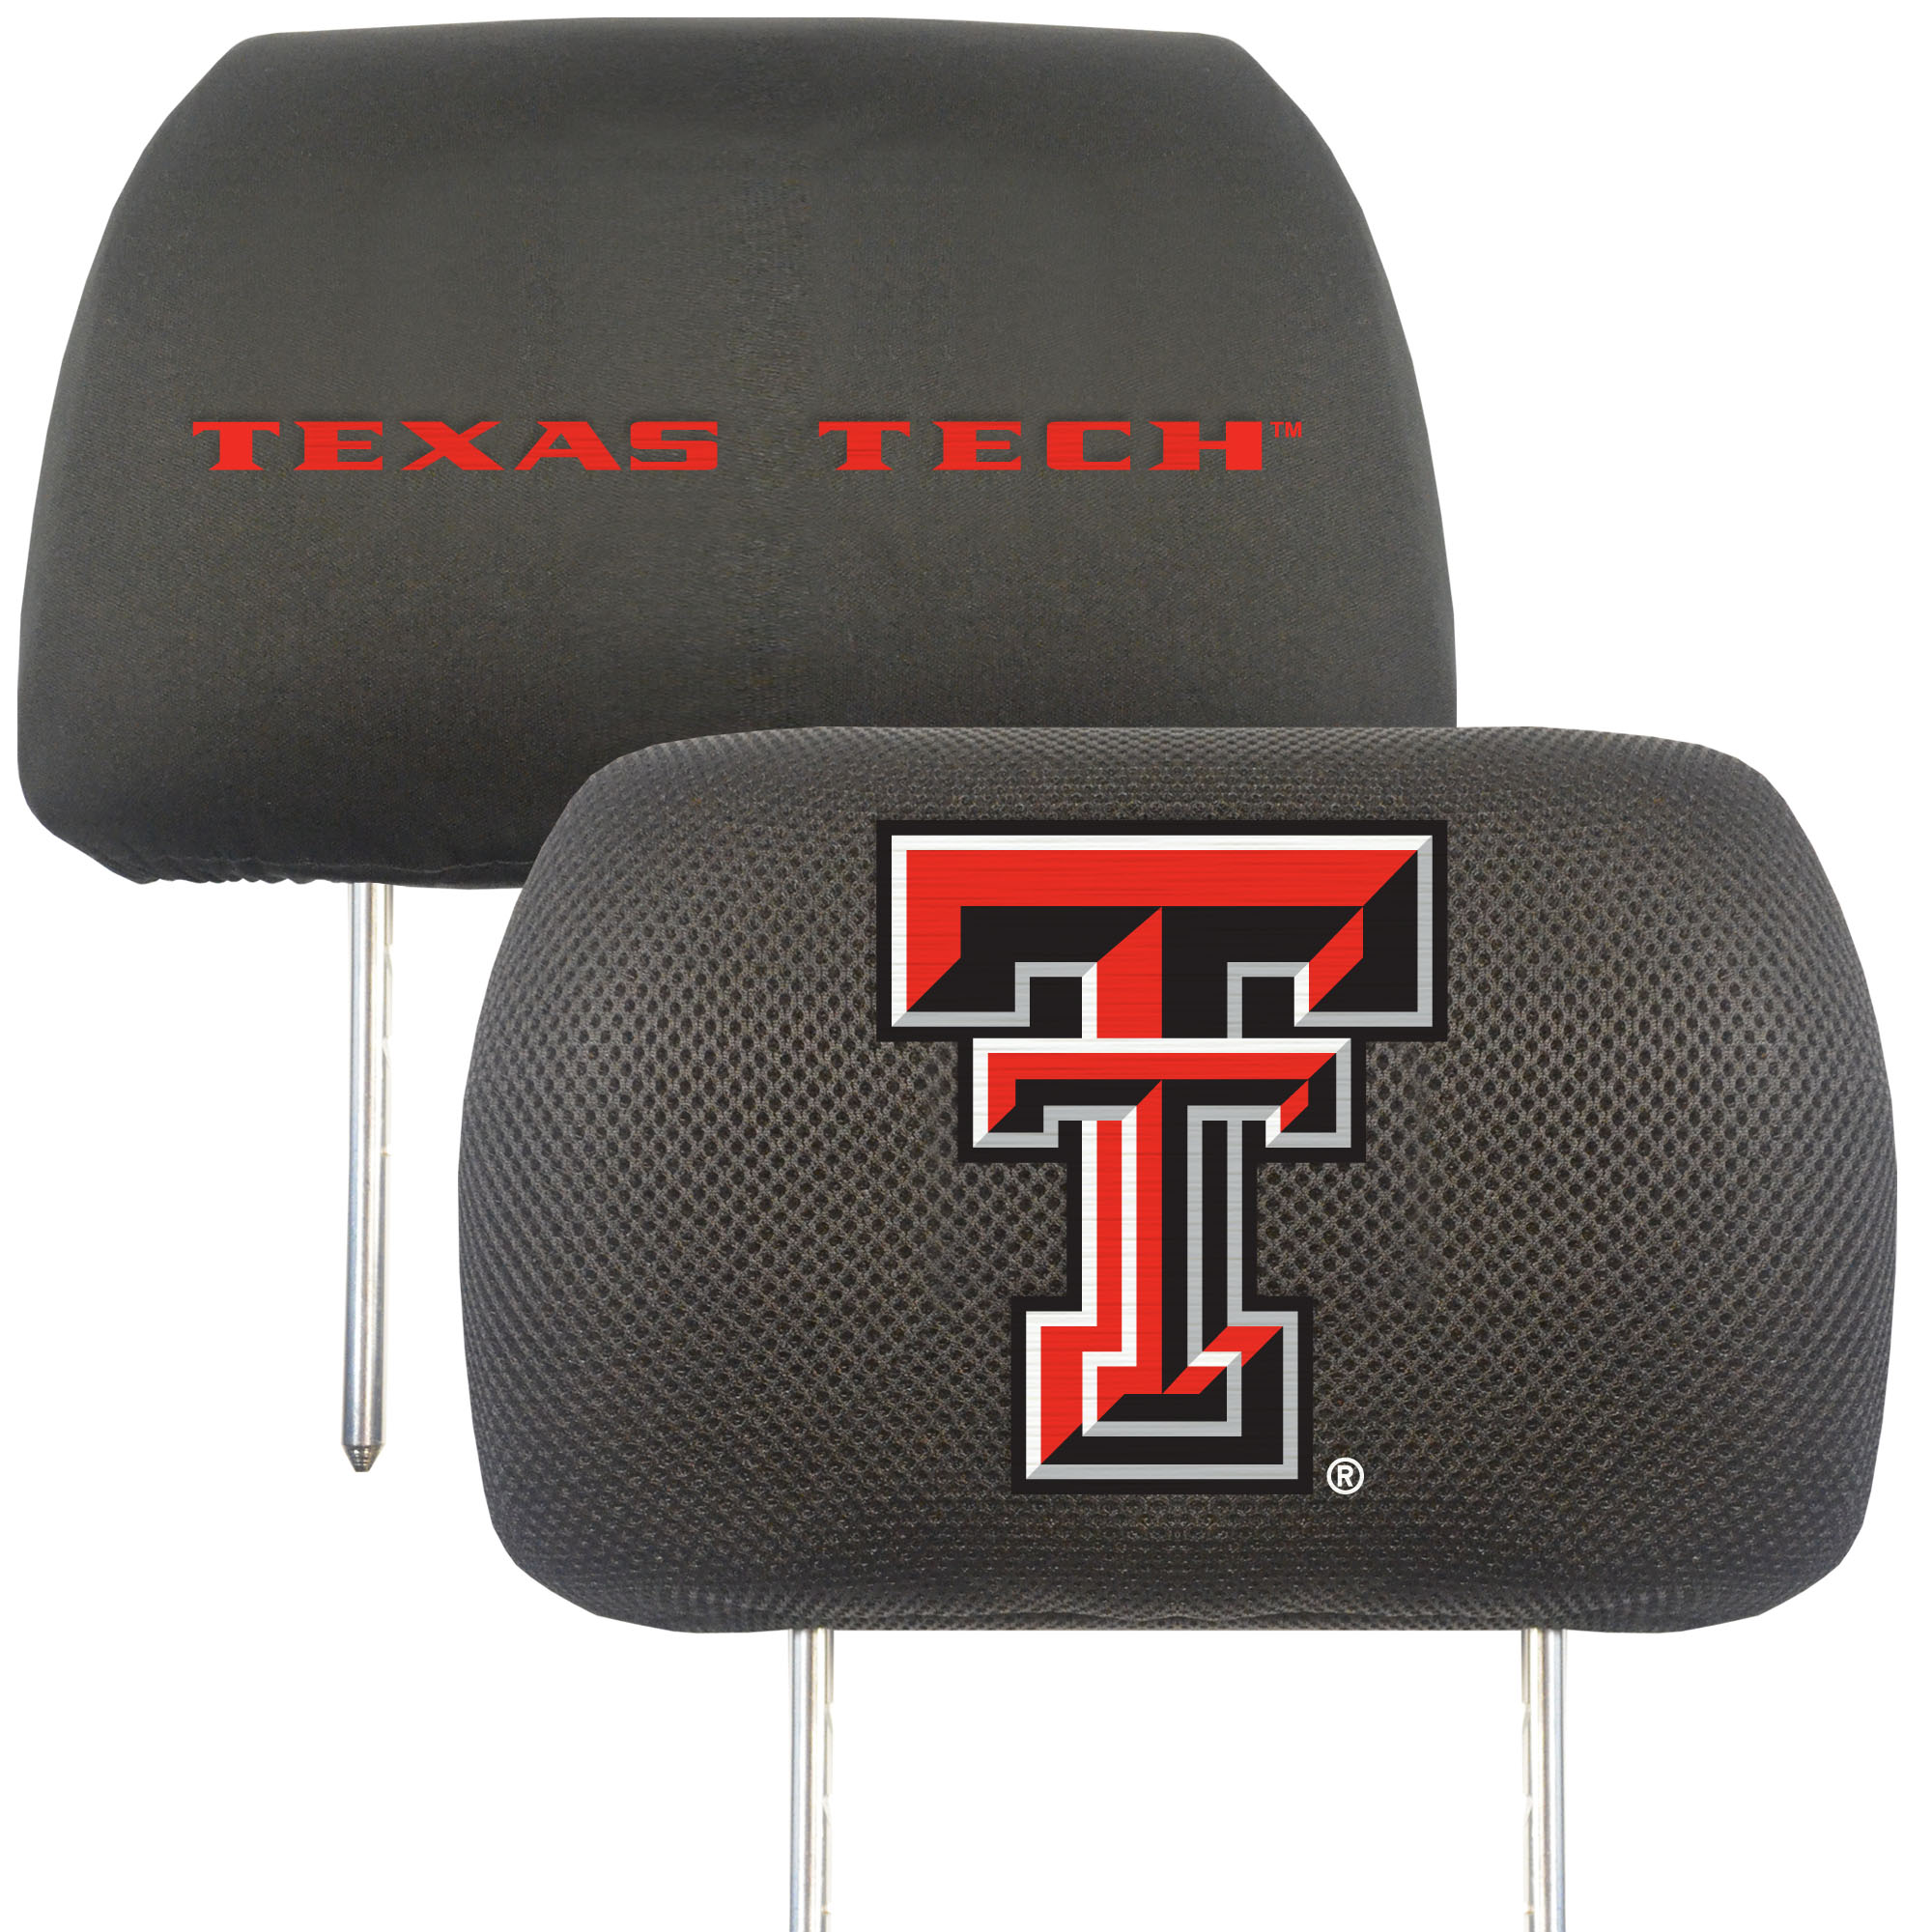 NCAA Texas Tech University Red Raiders Head Rest Cover Automotive Accessory